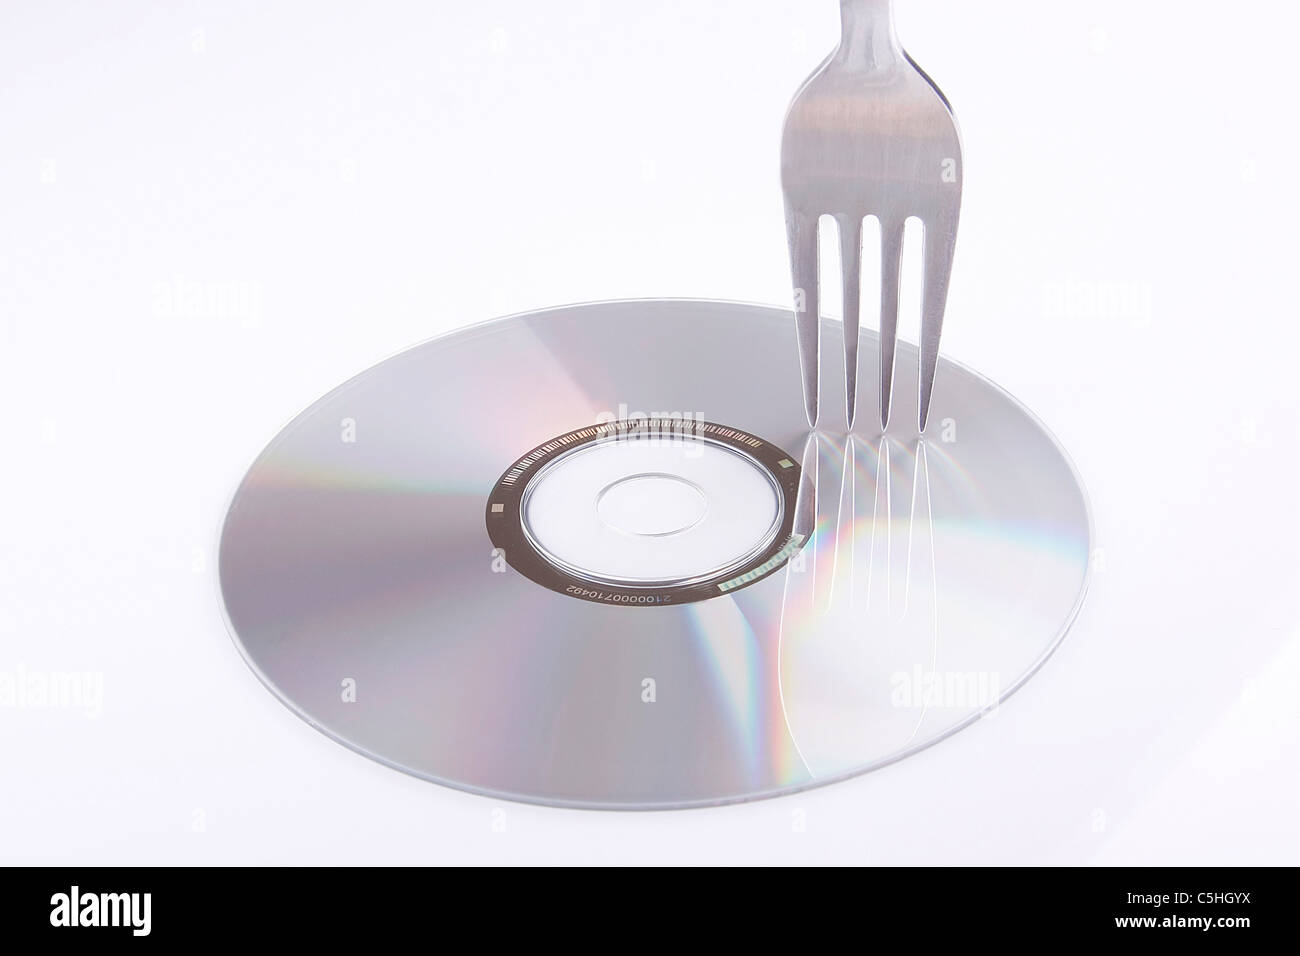 fork sketching compact disc - Stock Image